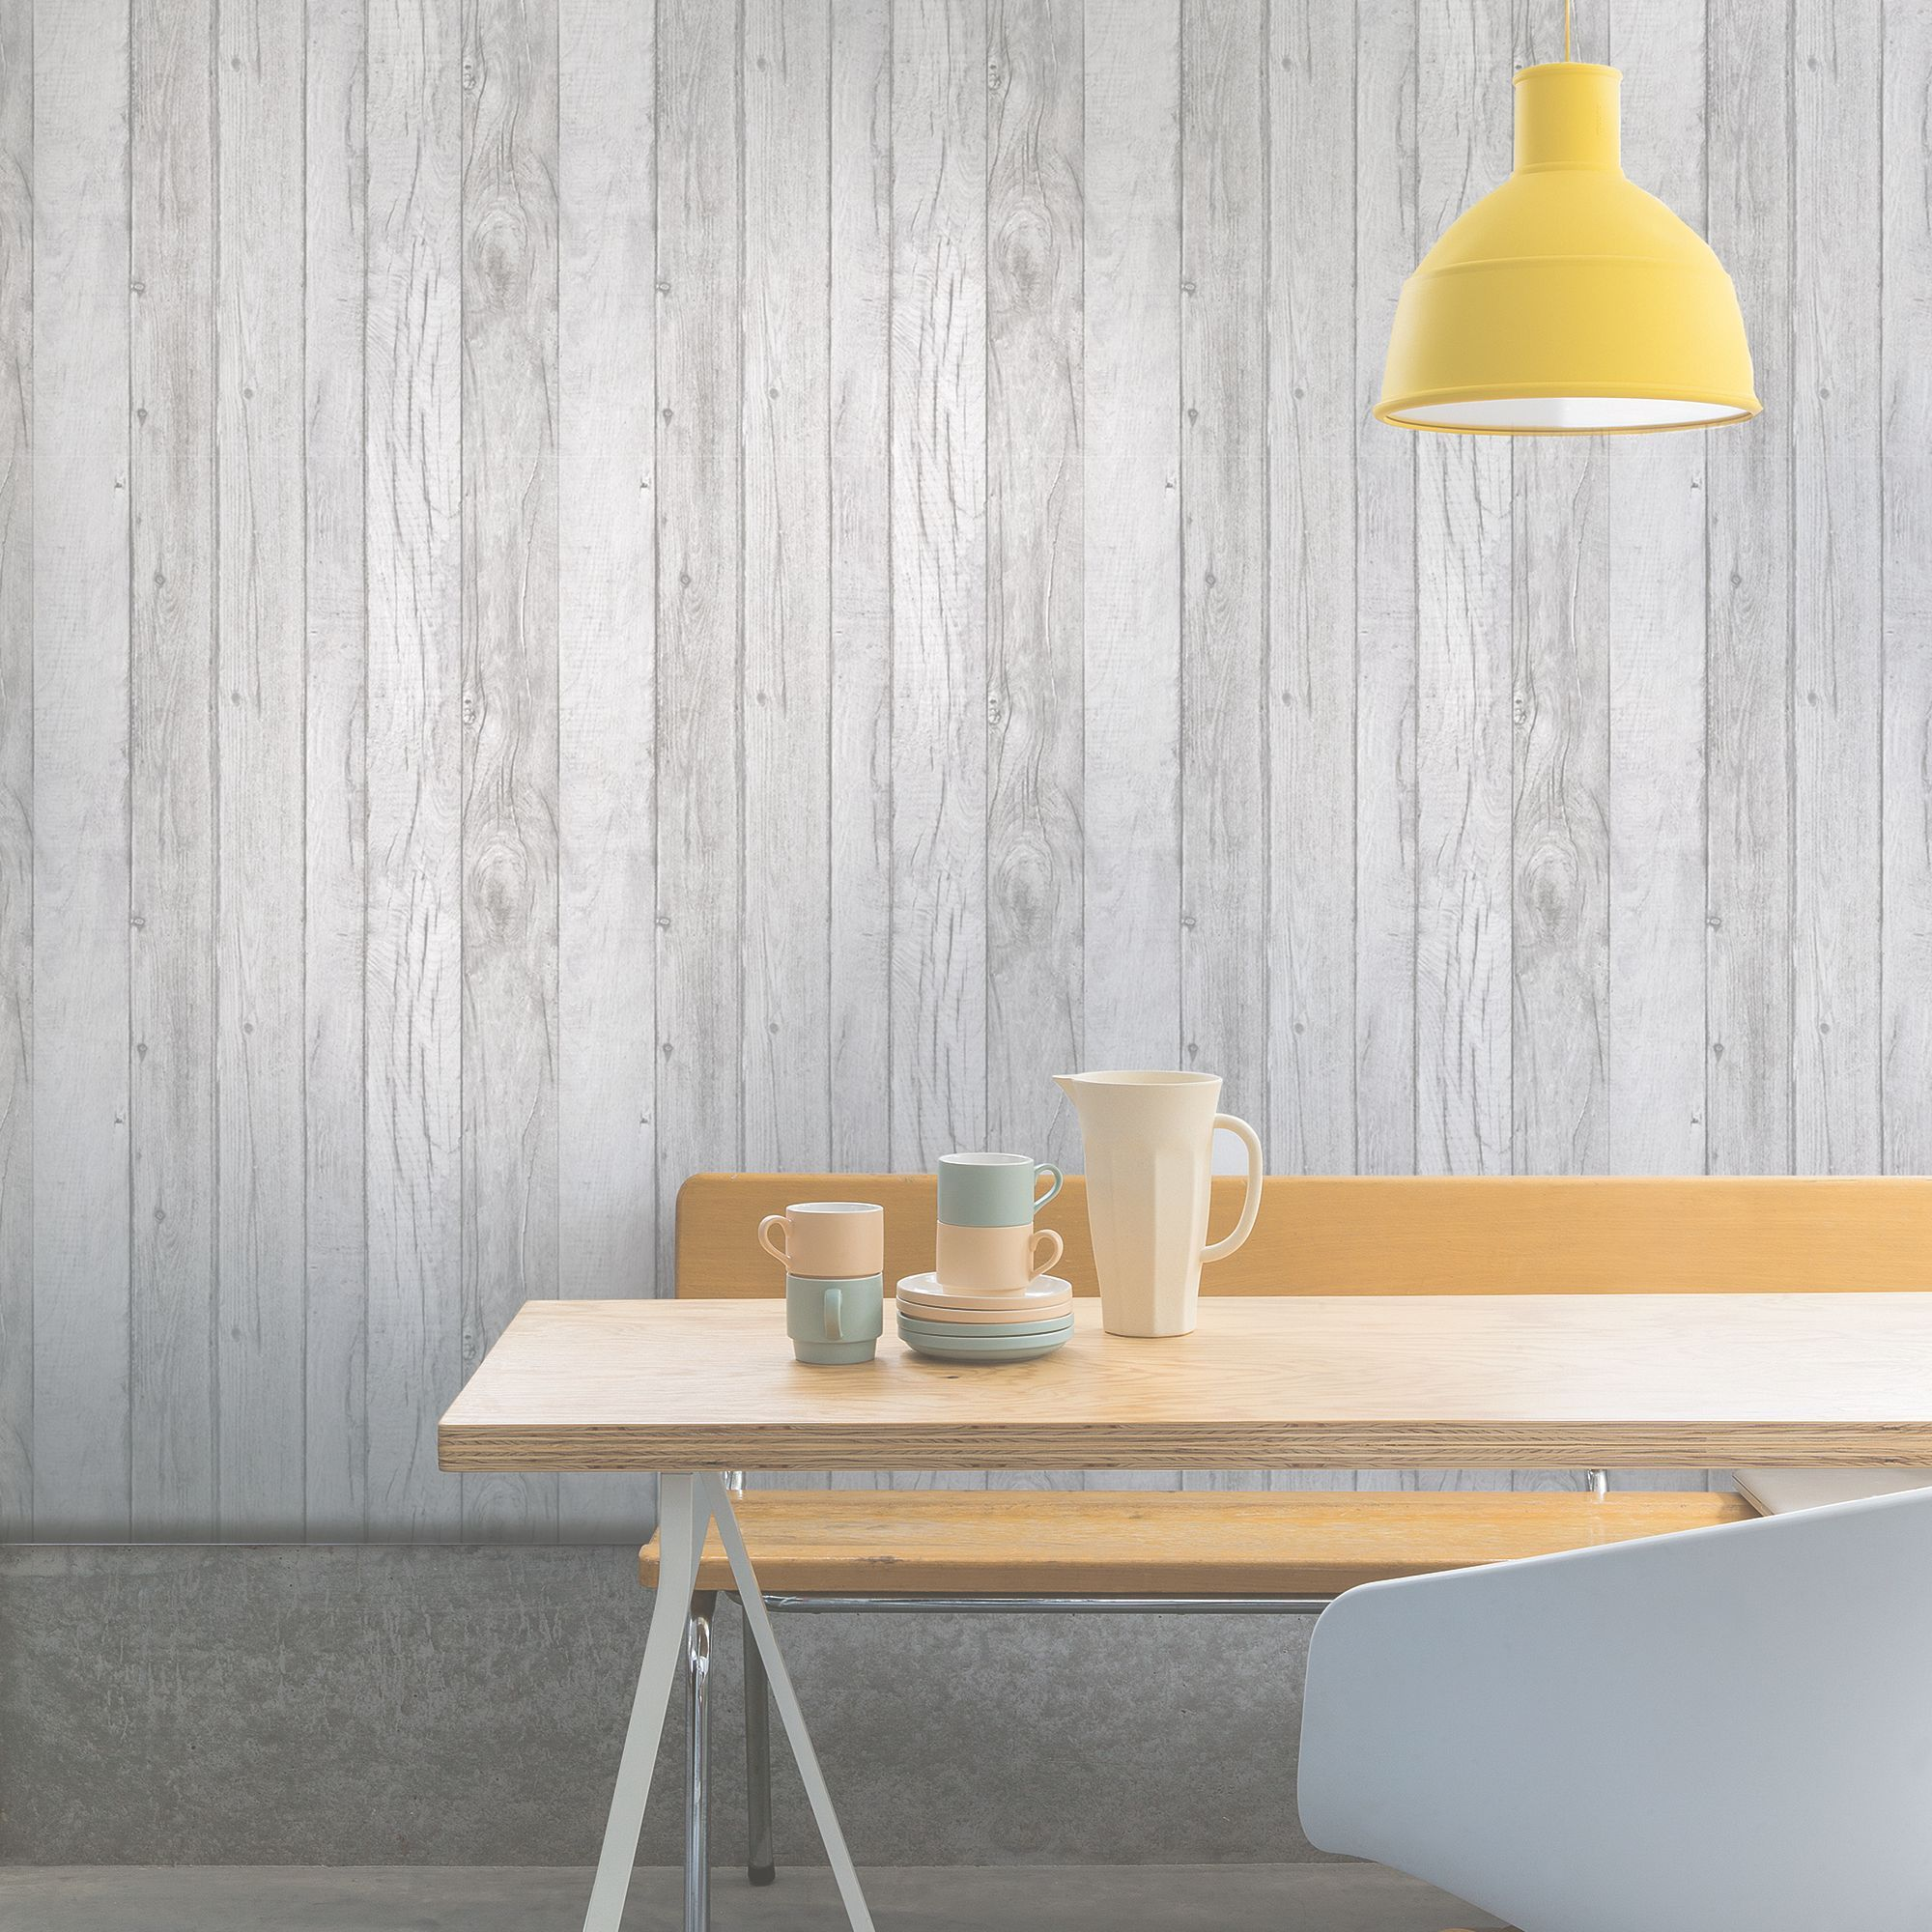 Ideco Home Grey Wood Panel Wallpaper B Q For All Your Home And Garden Supplies And Advice On All The Lates Wood Wallpaper Wood Effect Wallpaper Wood Paneling